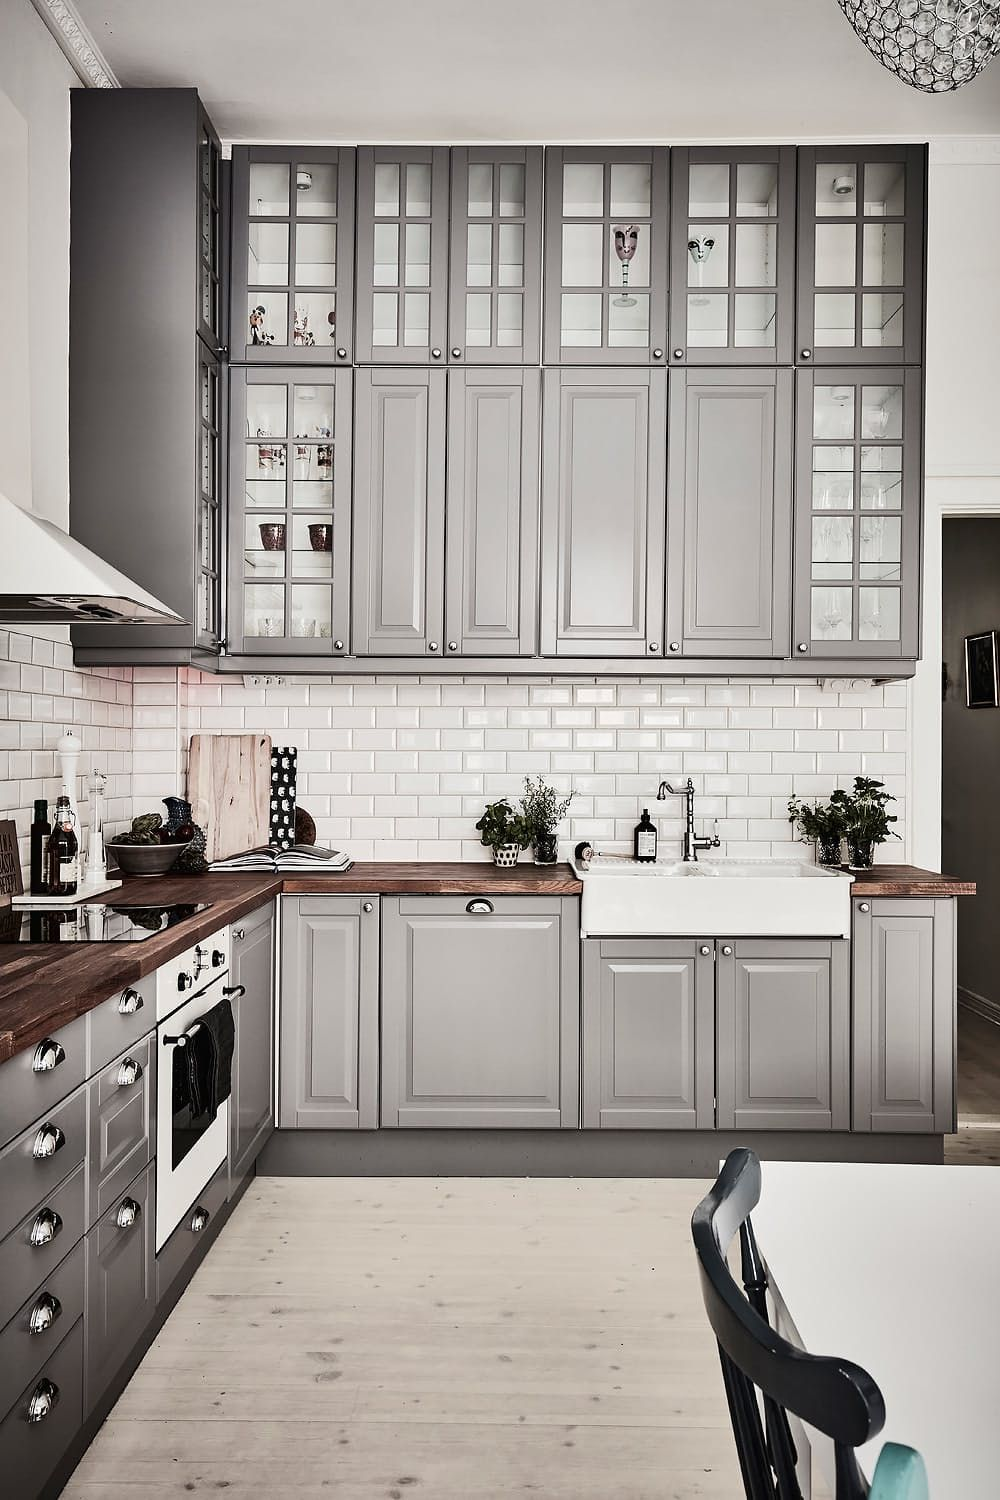 Inspiring Kitchens You Won\'t Believe are IKEA | Cocinas, Diseño ...